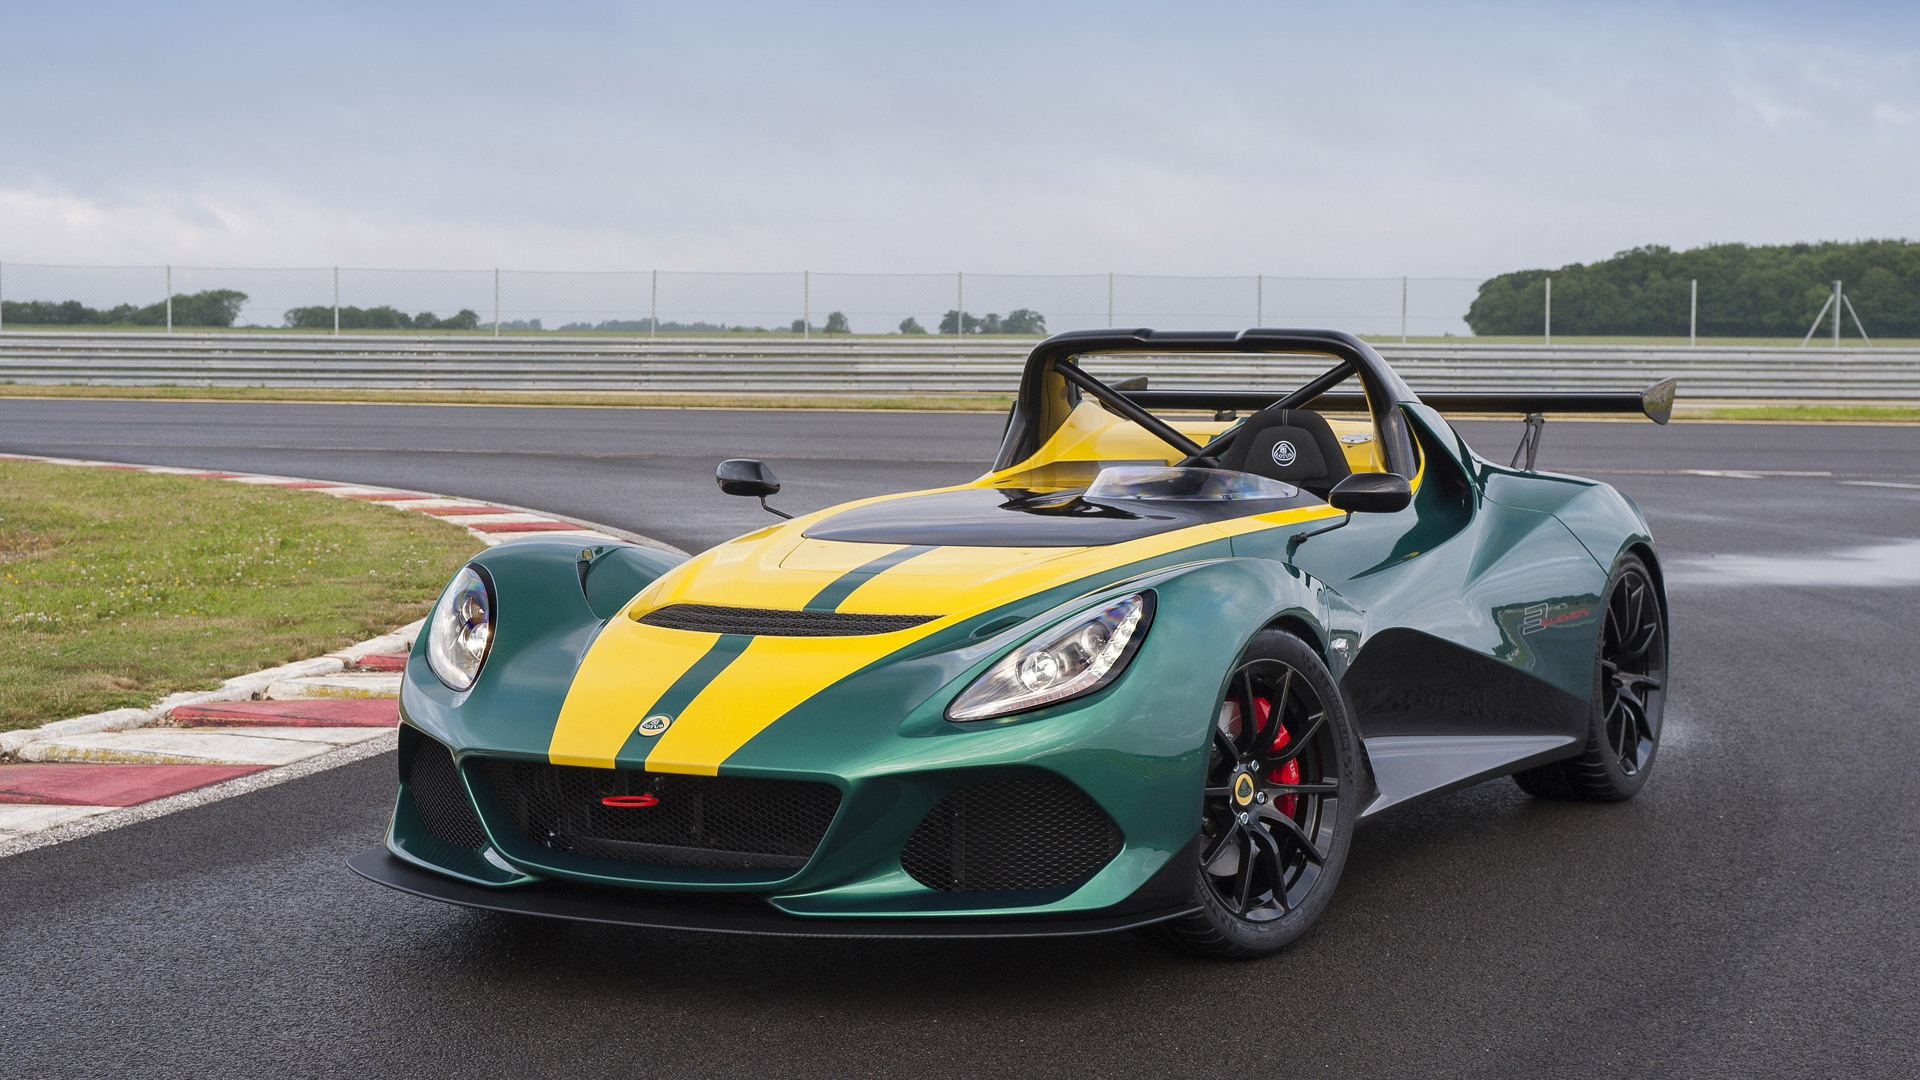 Lotus 3-Eleven, 2015 Goodwood Festival of Speed